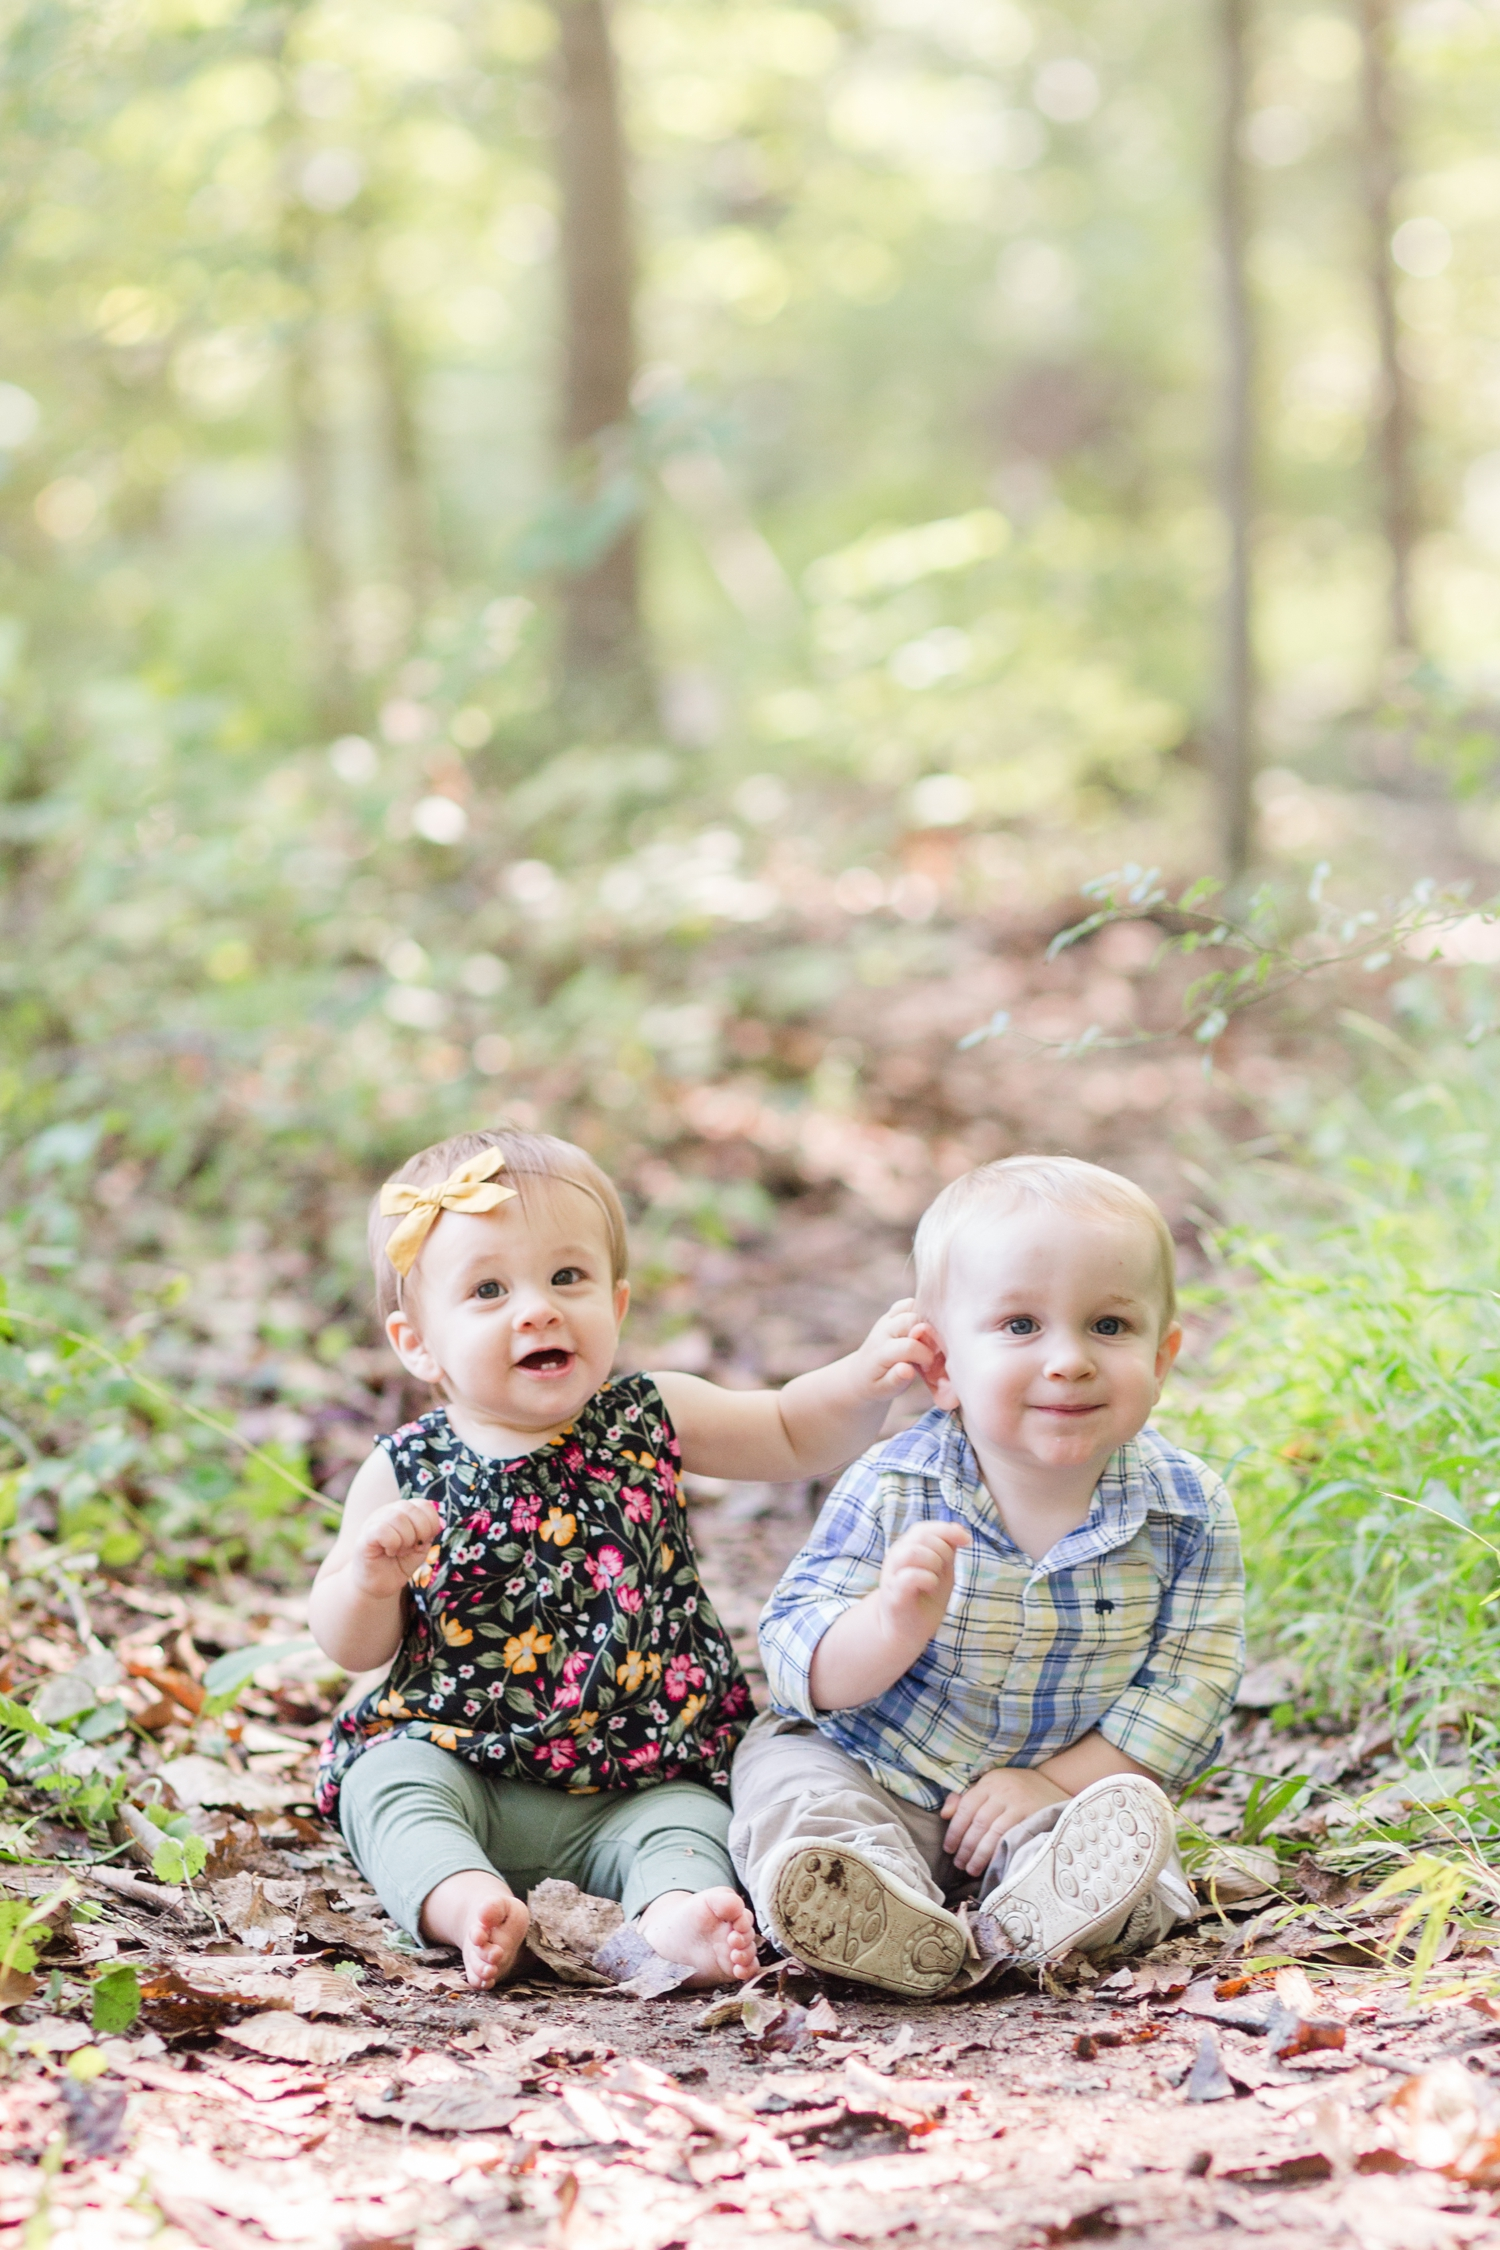 How cute are these cousins?!